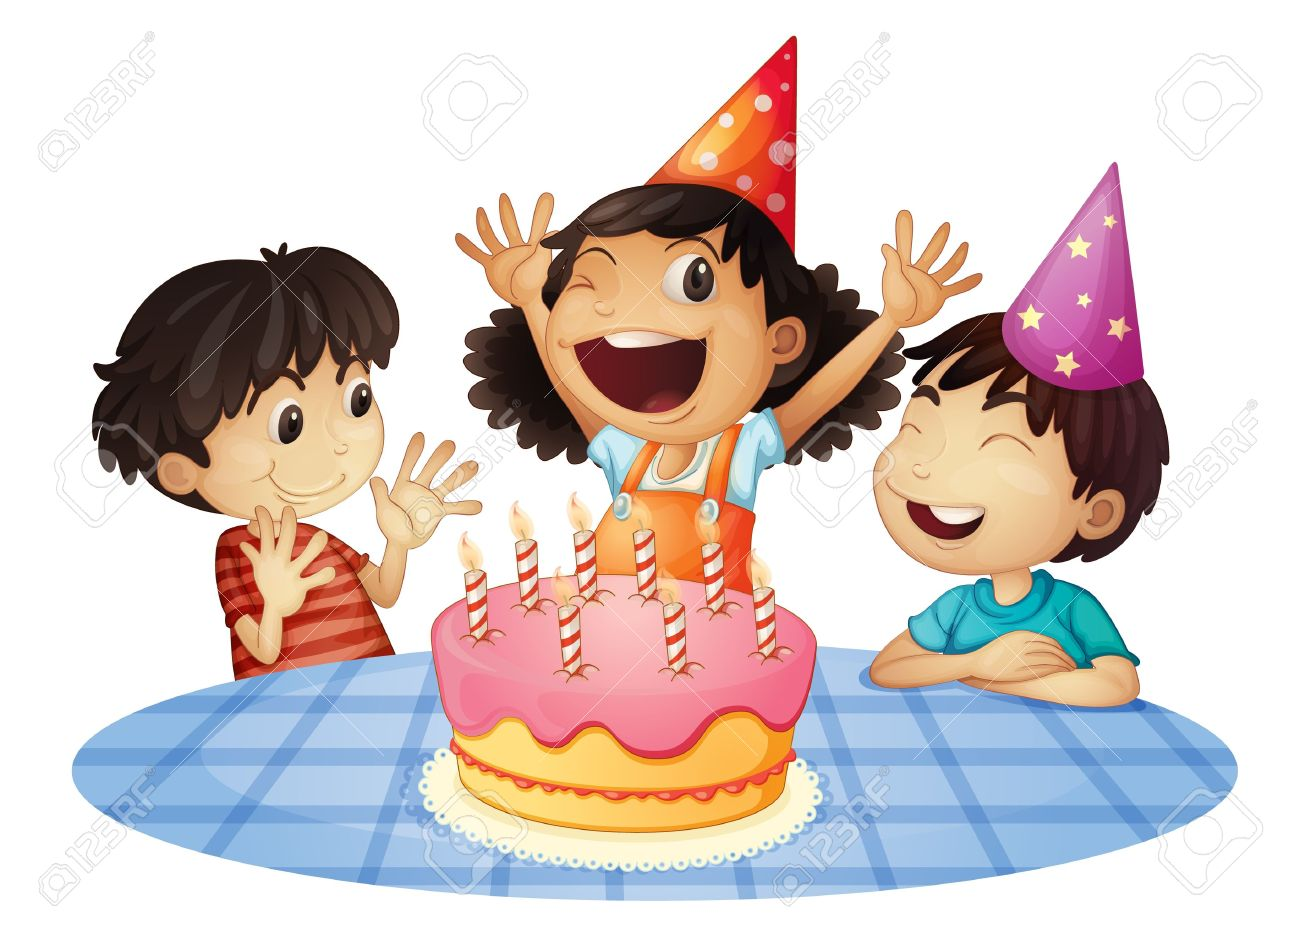 birthday party scene clipart - Clipground